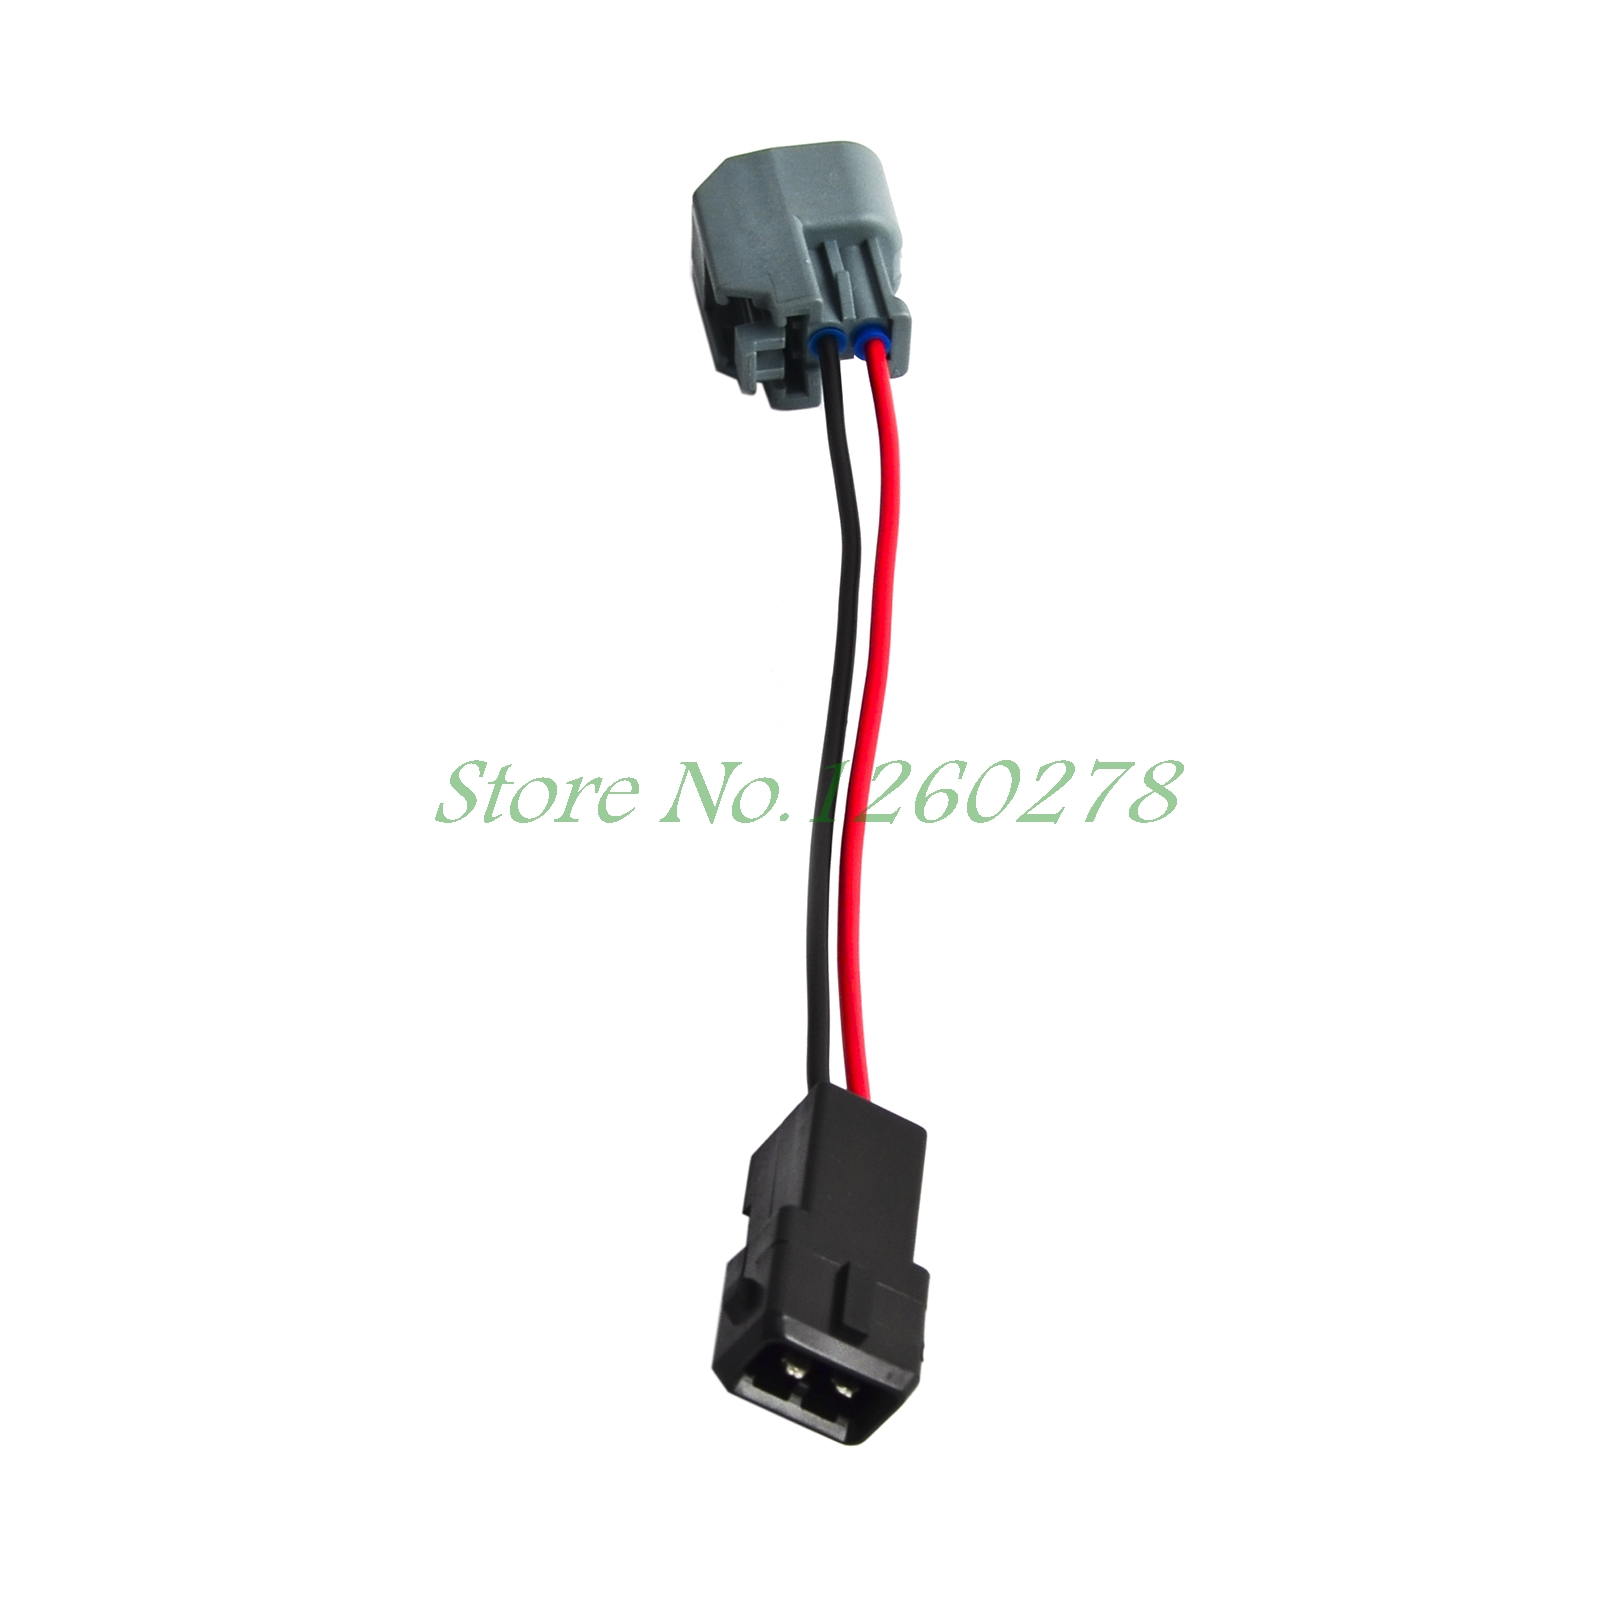 Engine Fuel Injector Wire Harness Connectors Adapter For 8 Ls1 Ls6 Wiring Lt1 Ev1 With Ls2 Ls3 Ls7 Ev6 In Inject Controls Parts From Automobiles